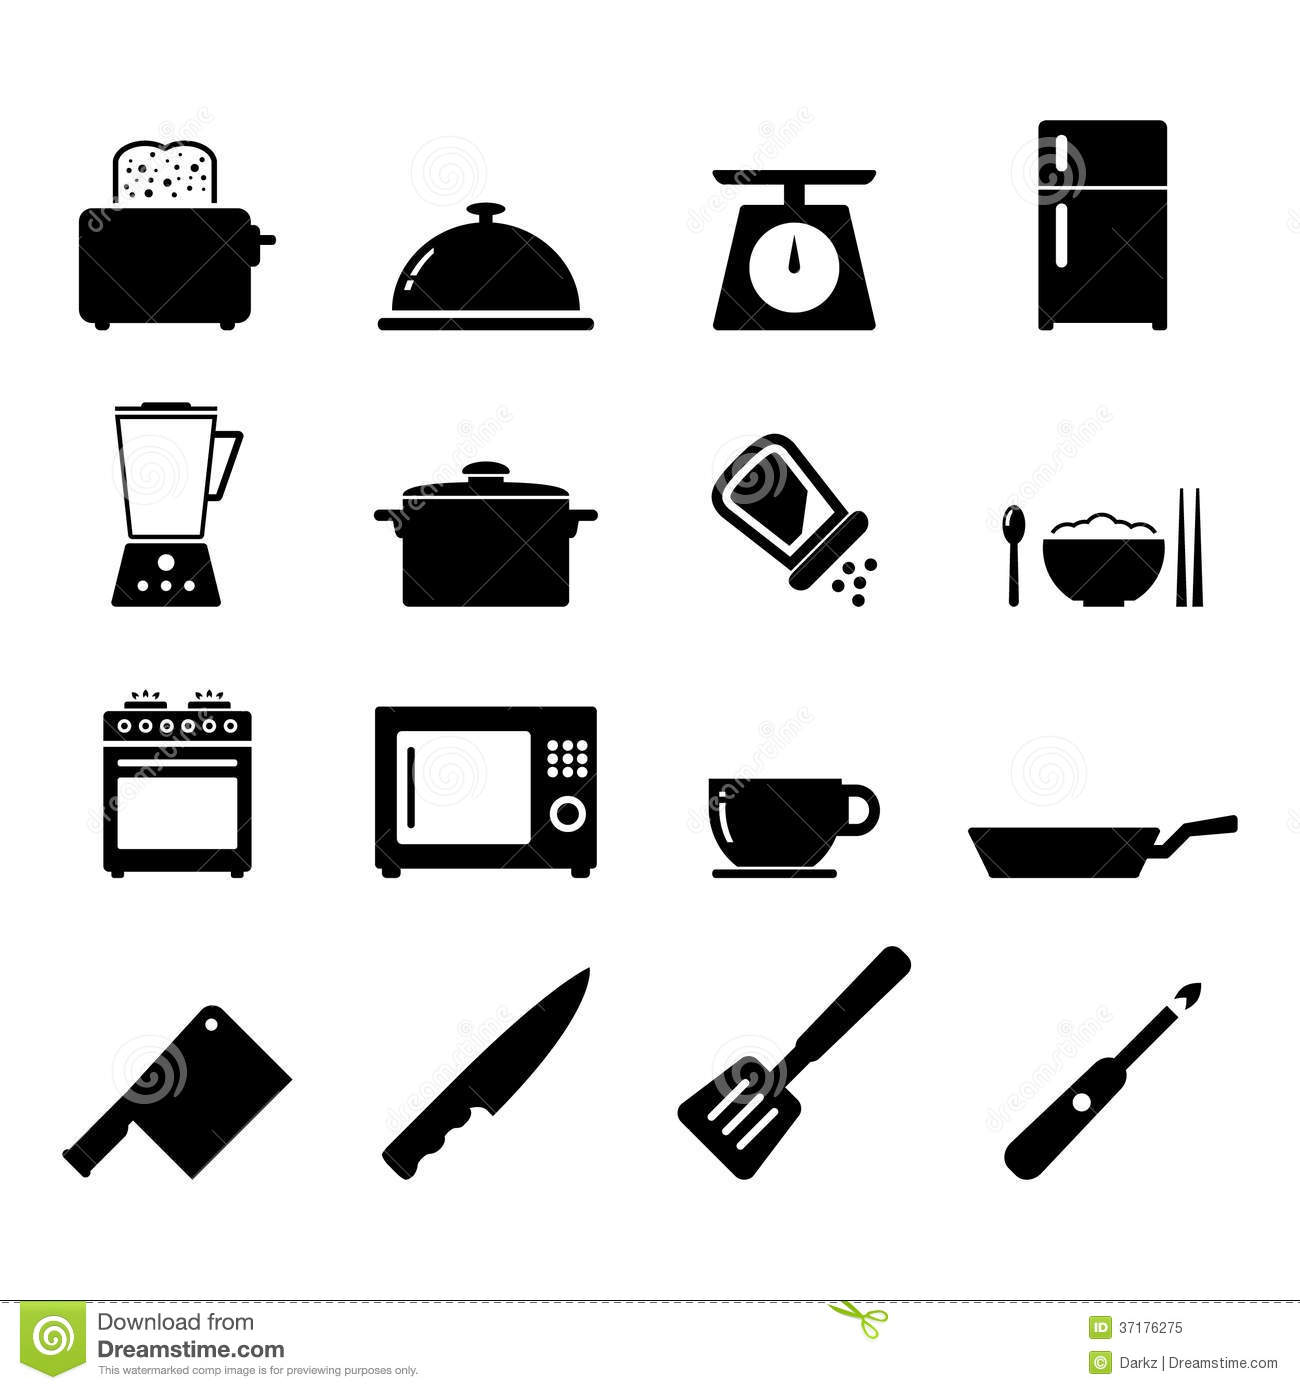 216281 together with Royalty Free Stock Photo Kitchen Icon Set Your Design Image37176275 also Indx Condos 70 Temperance St likewise Carrito besides Download. on appliance